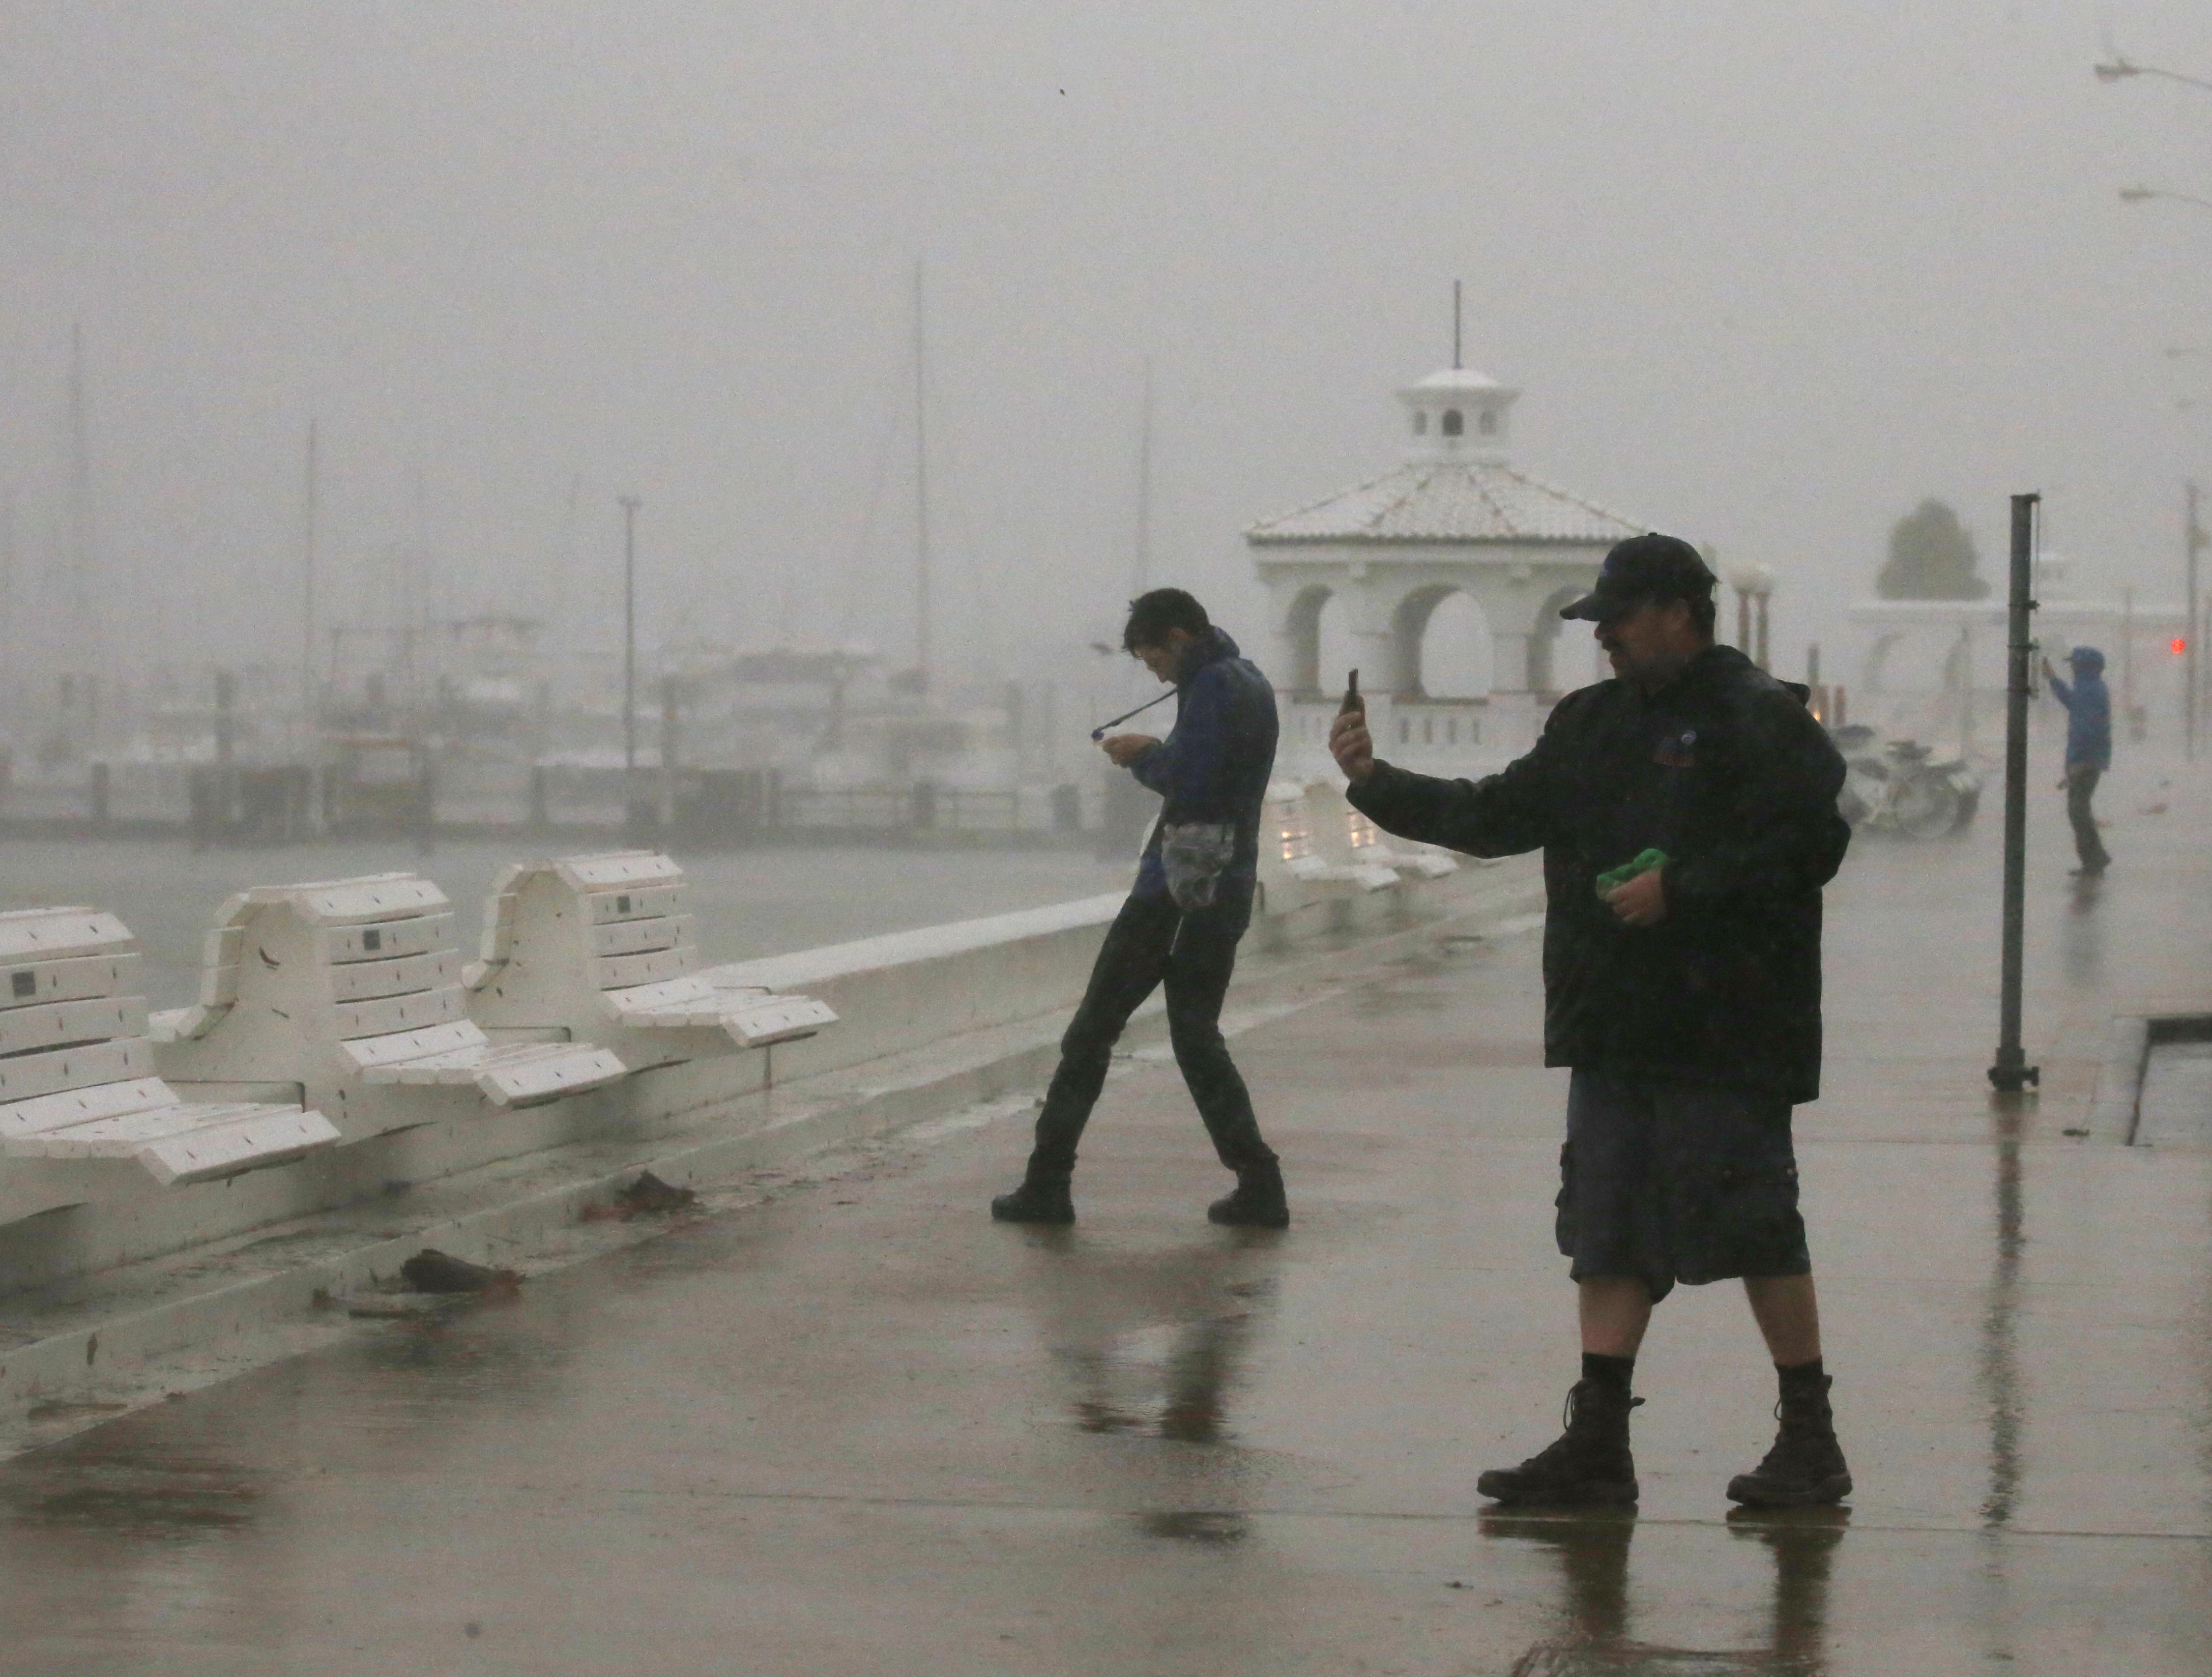 A storm chaser films himself on a camera phone as Hurricane Harvey approaches, on the boardwalk in Corpus Christi, Texas. (REUTERS/Adrees Latif)